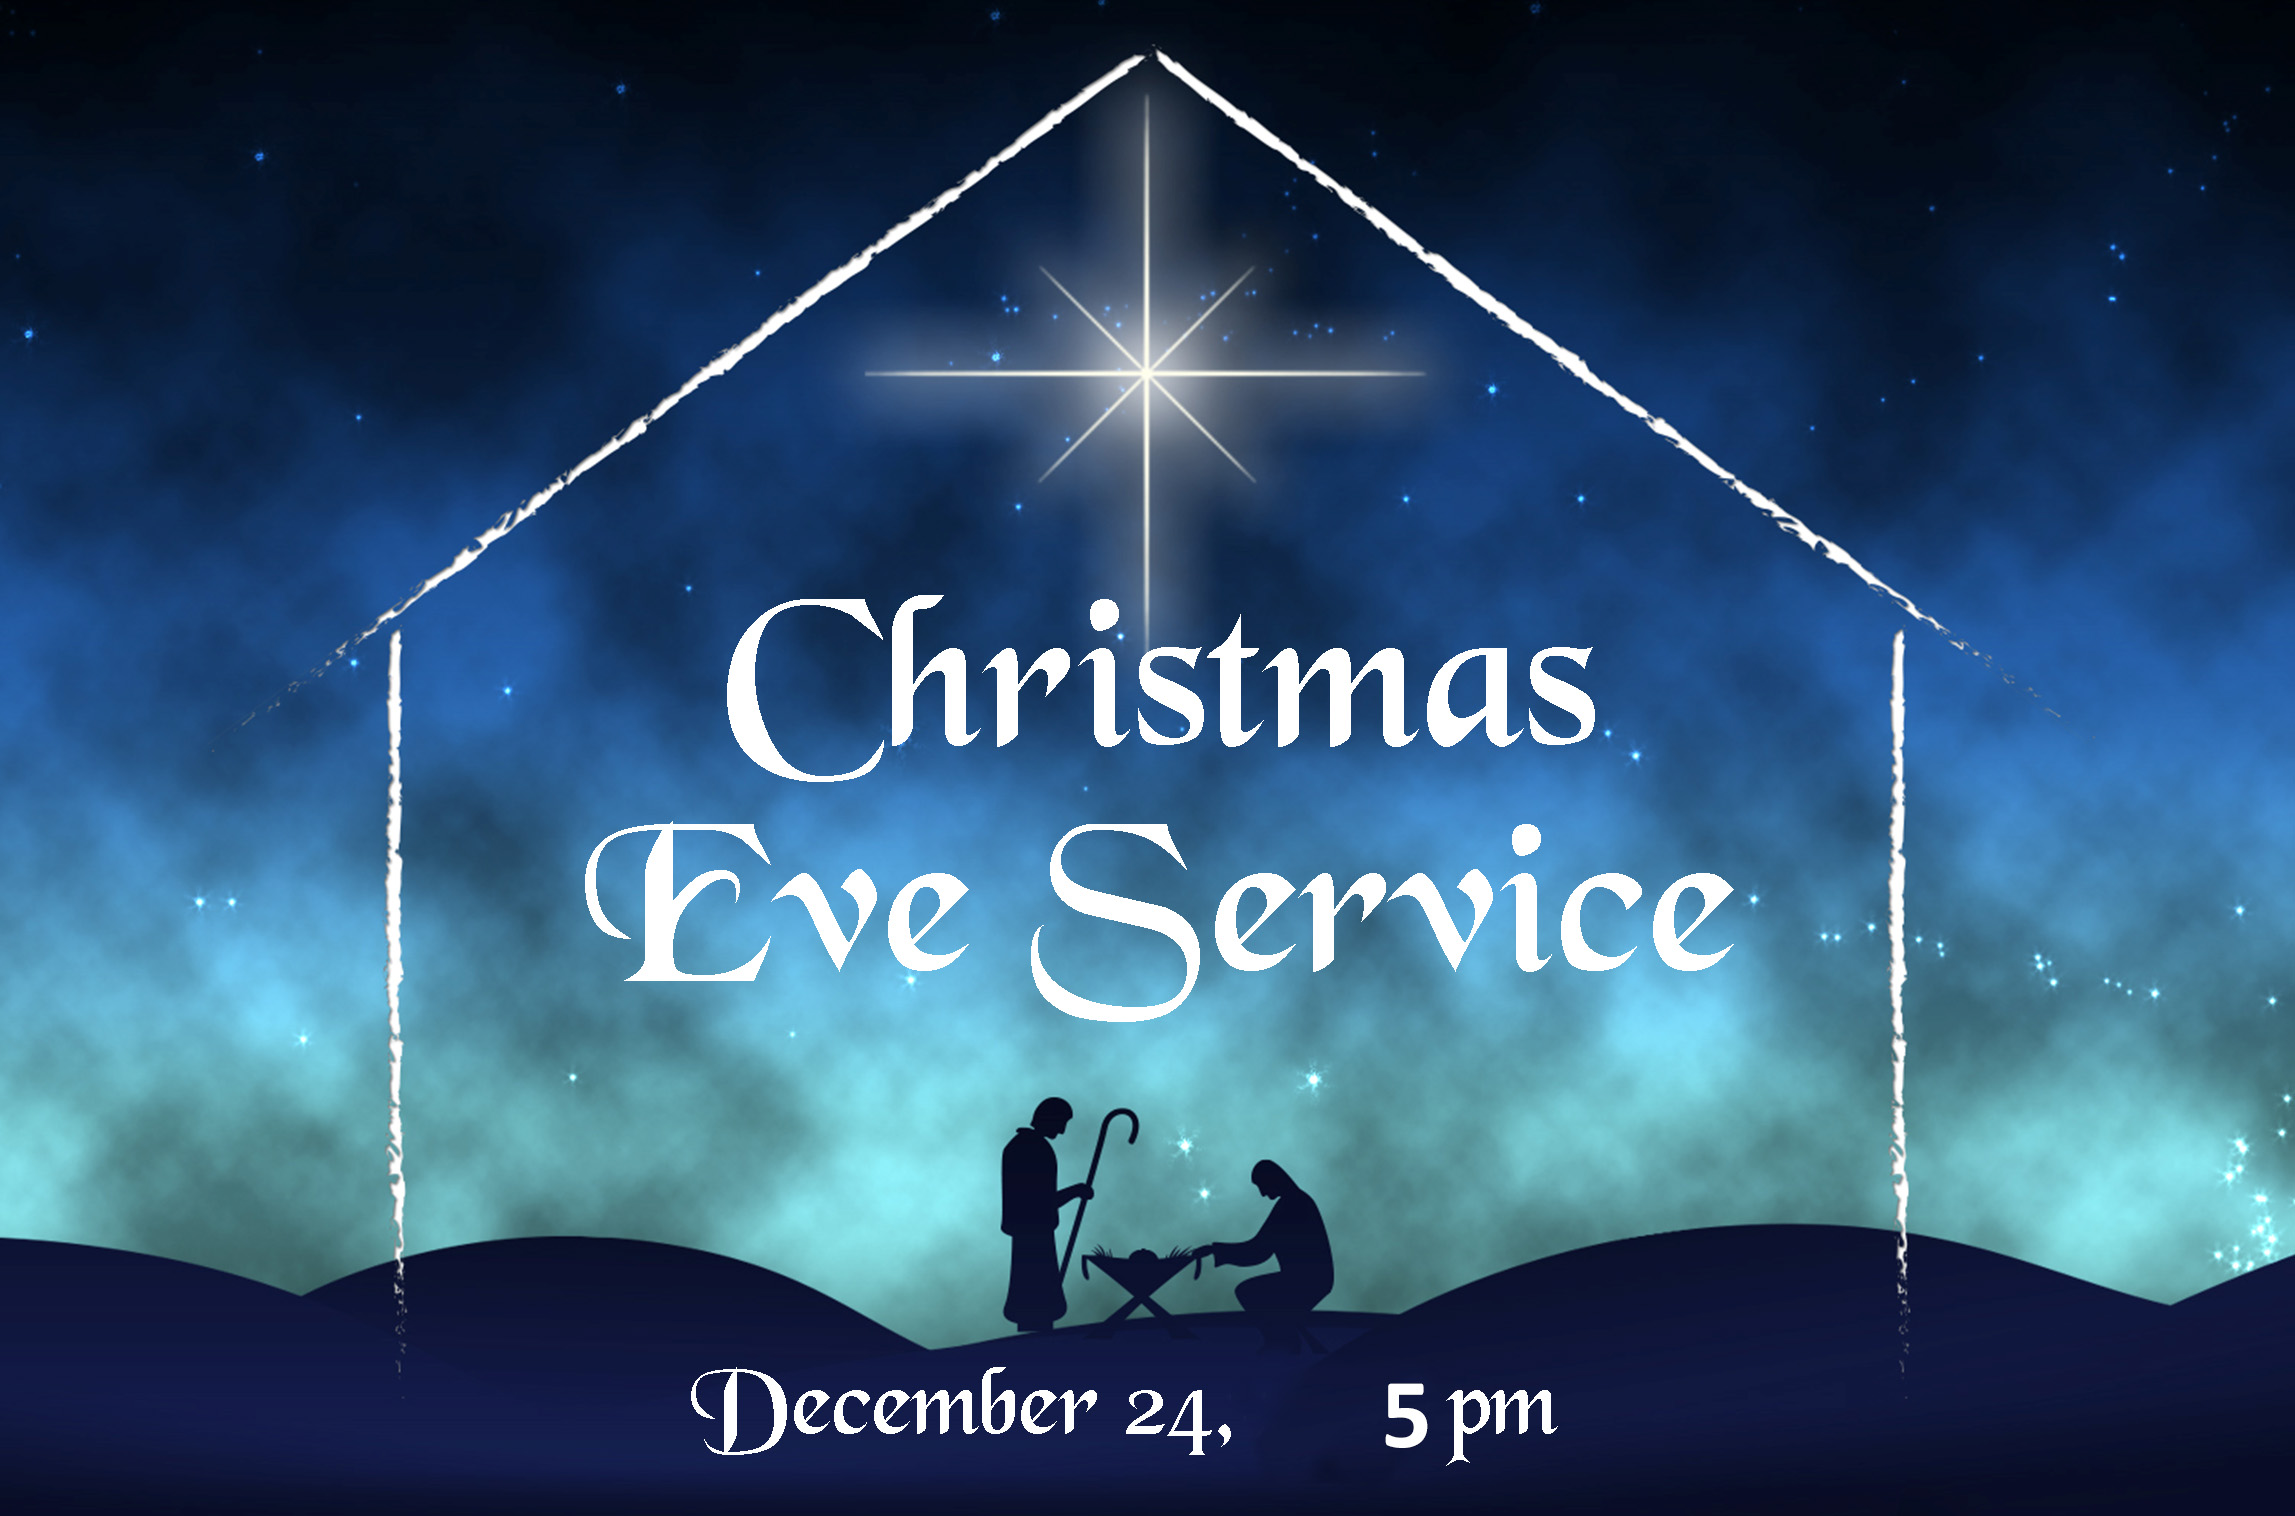 Christmas Eve Services.Christmas Eve Service 5pm Rbc Redeemer Bc